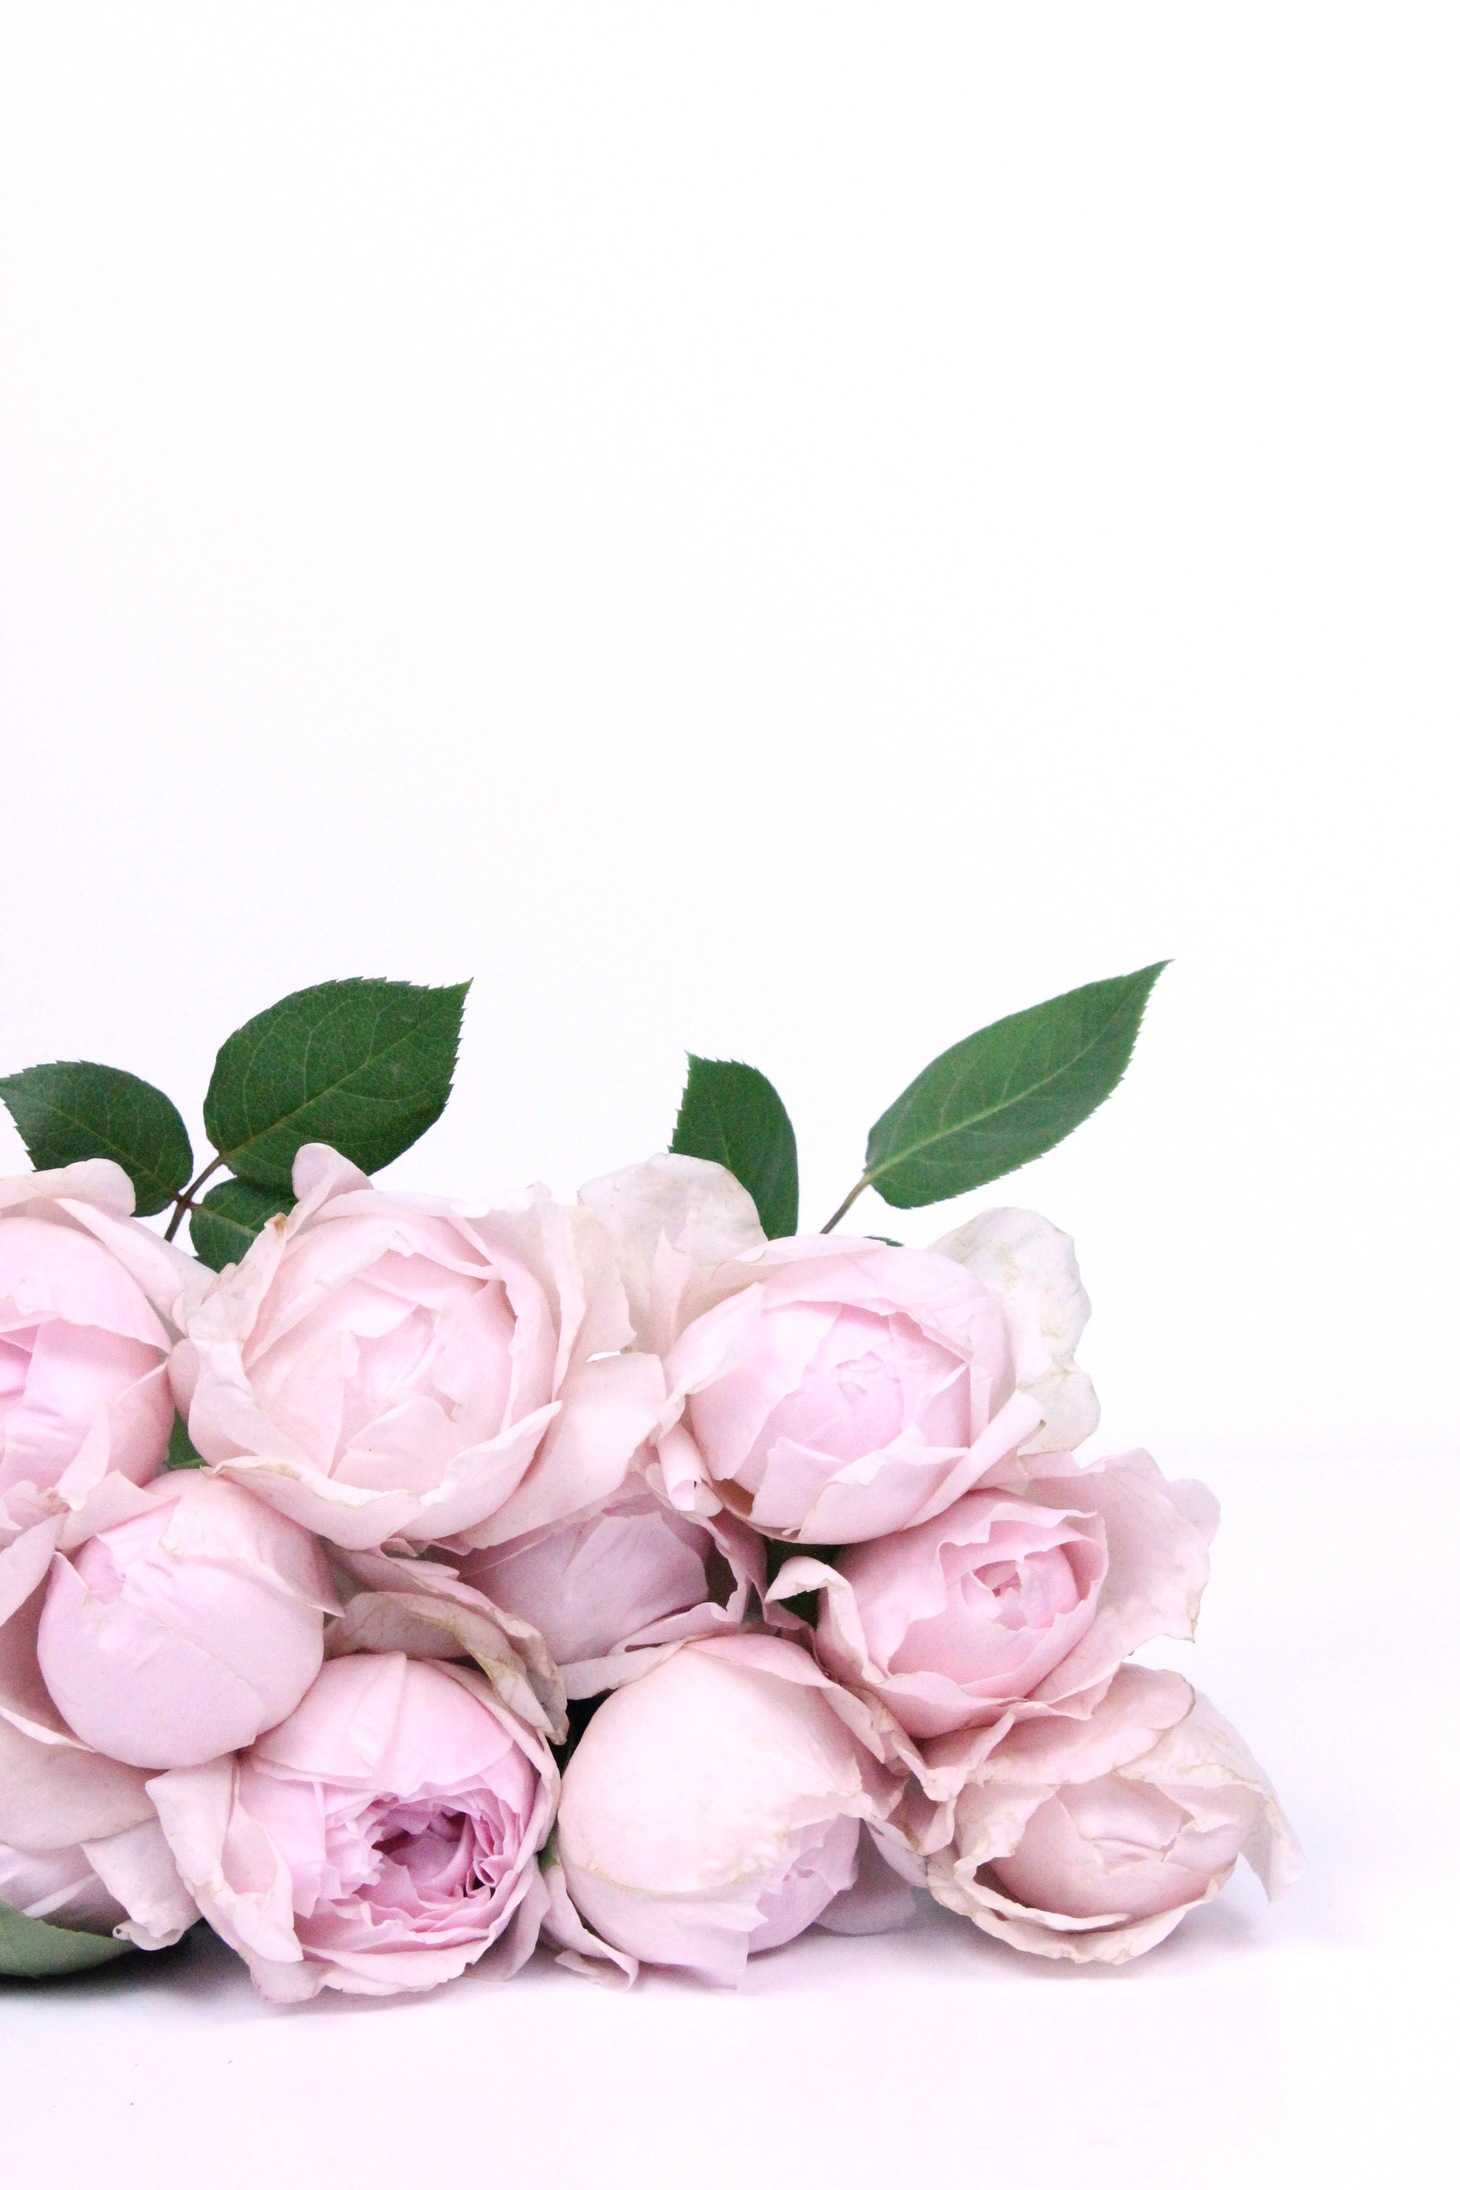 Peony Pink Rose, peony alternative, fragrant garden rose, rose looks just like peonies, rose with myrrh scent, St Cecilia rose, peony rose